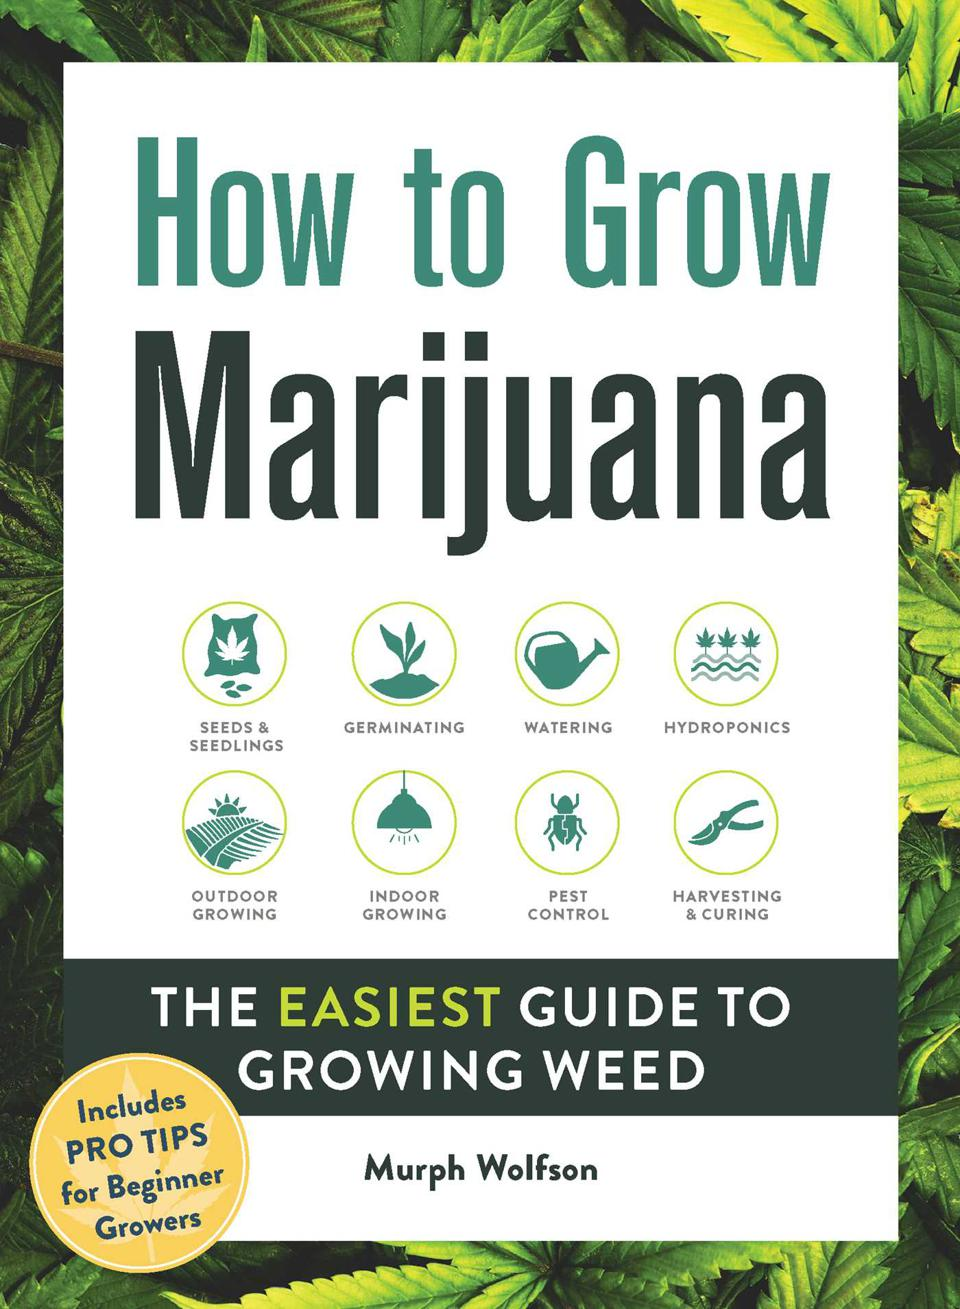 How to Grow Marijuana by Murph Wolfson